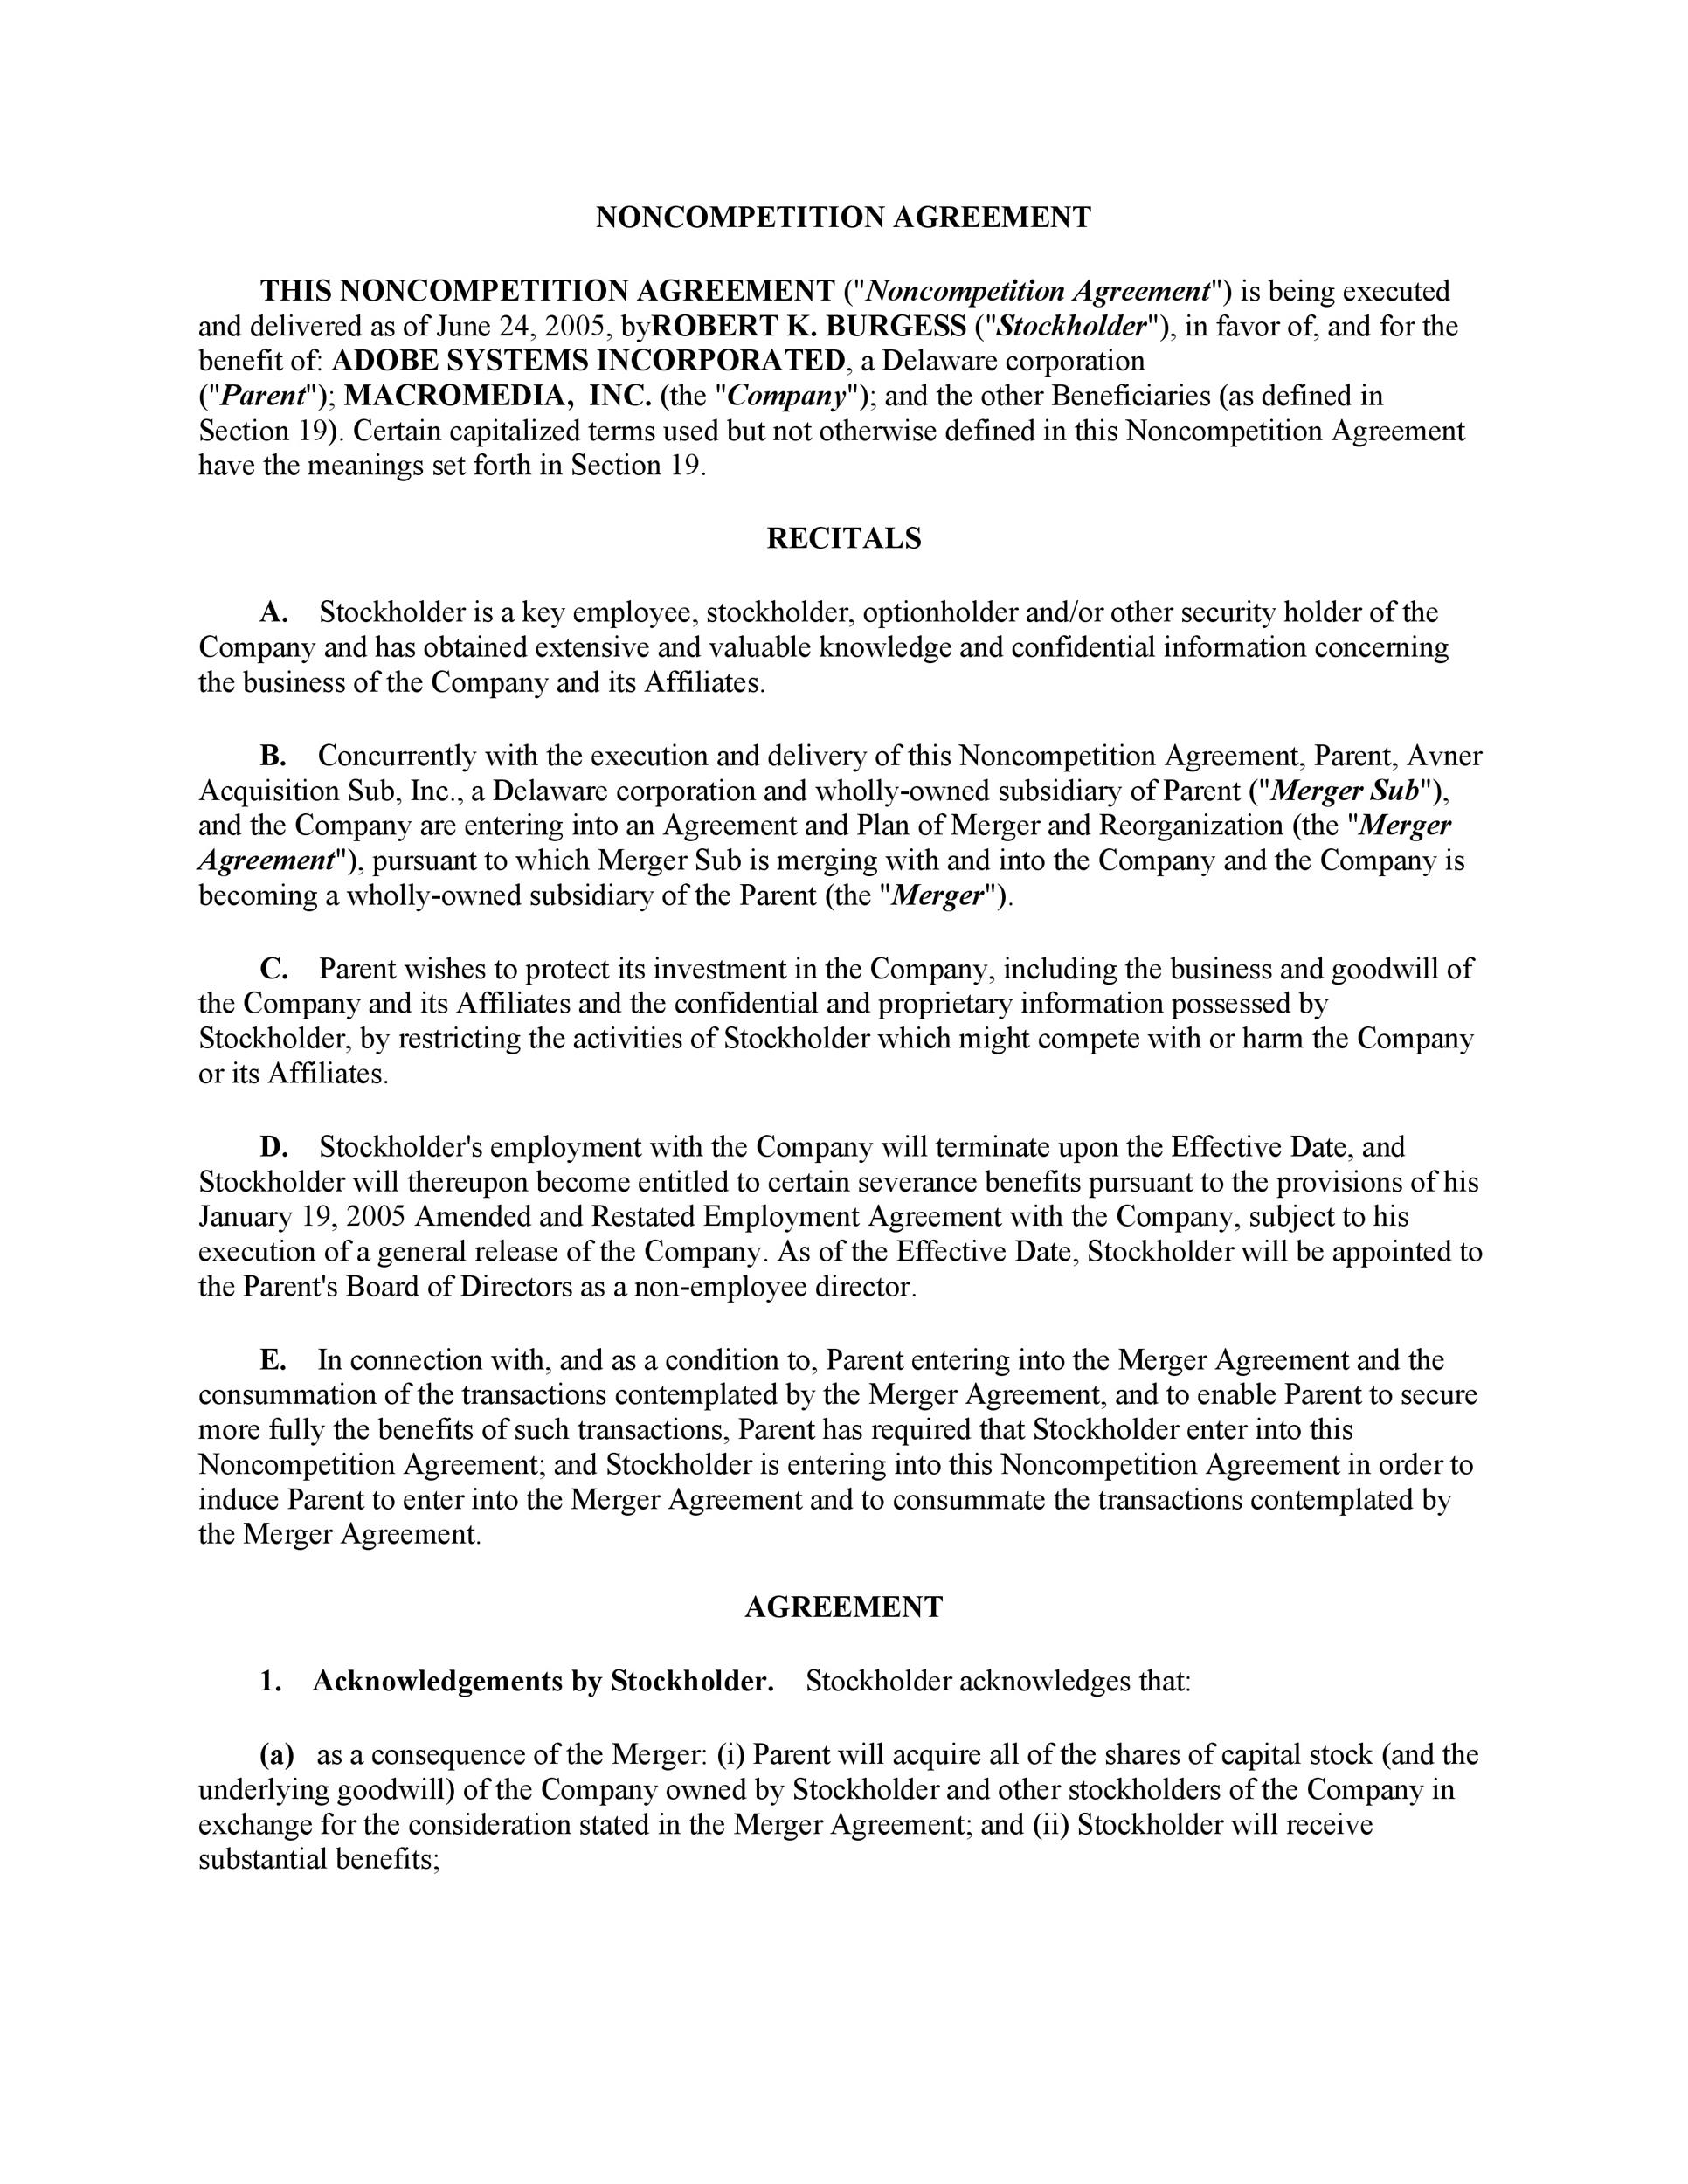 Non-Compete Agreement Template 23